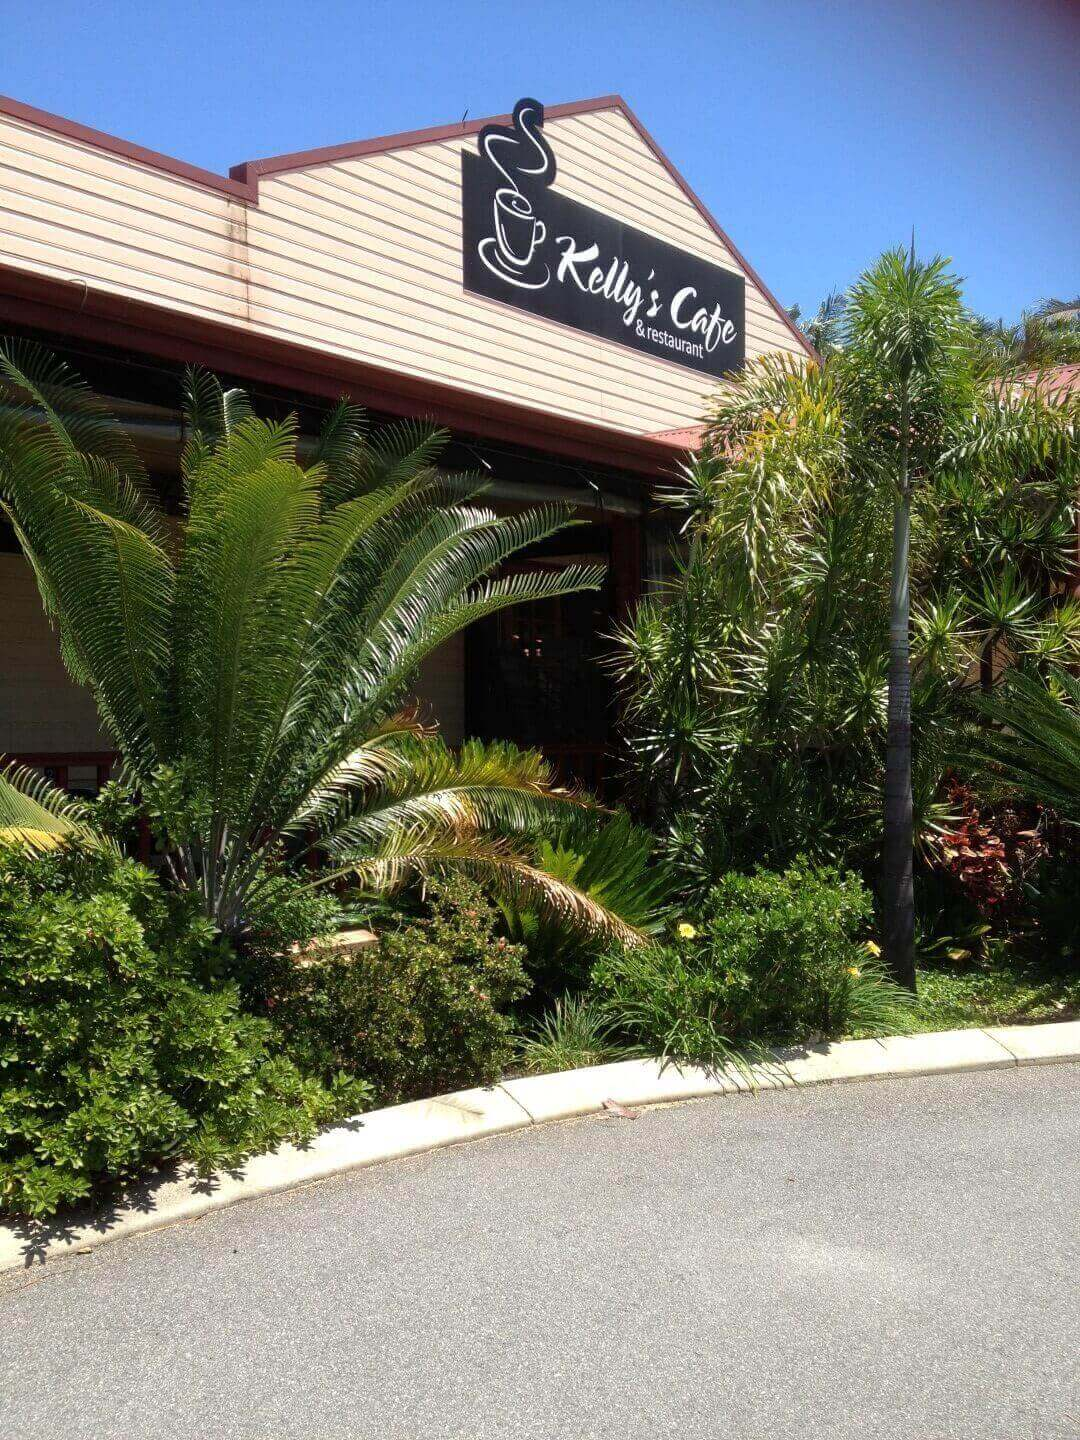 Kelly's Cafe & Restaurant, Canning Vale